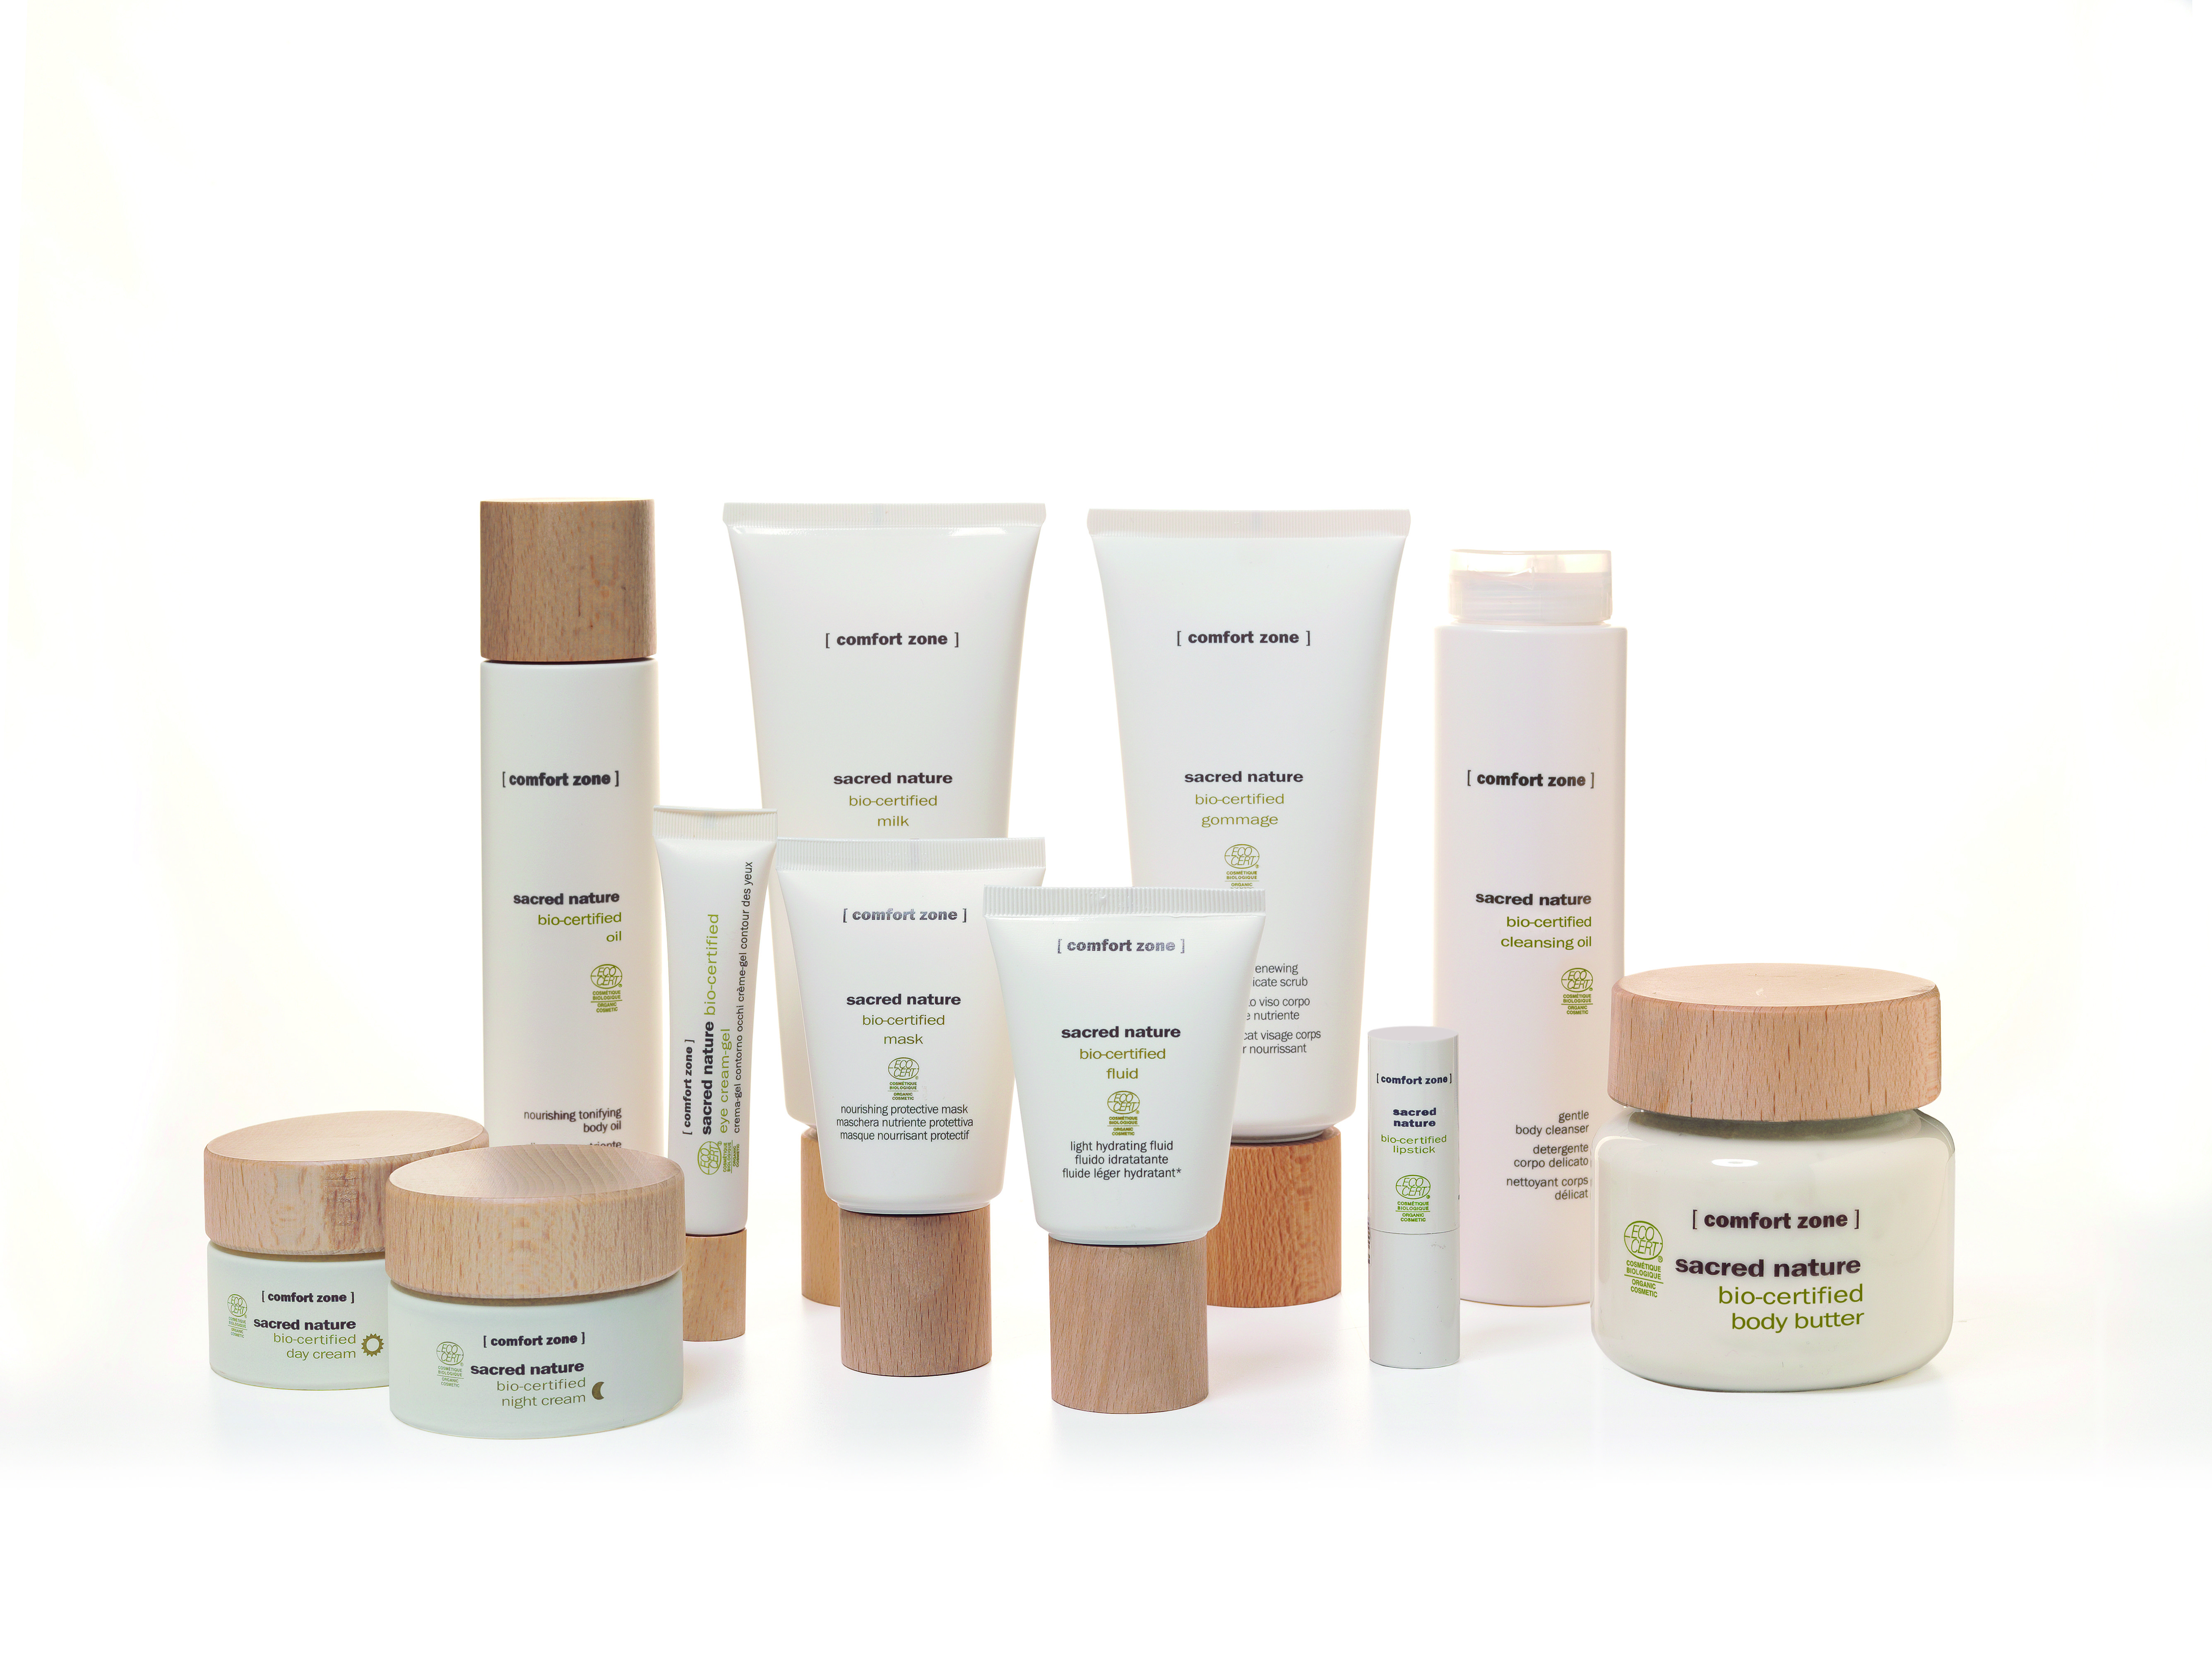 Pin By Salon Incognito On Sacred Nature Skin Care Spa Natural Sunscreen Best Natural Skin Care